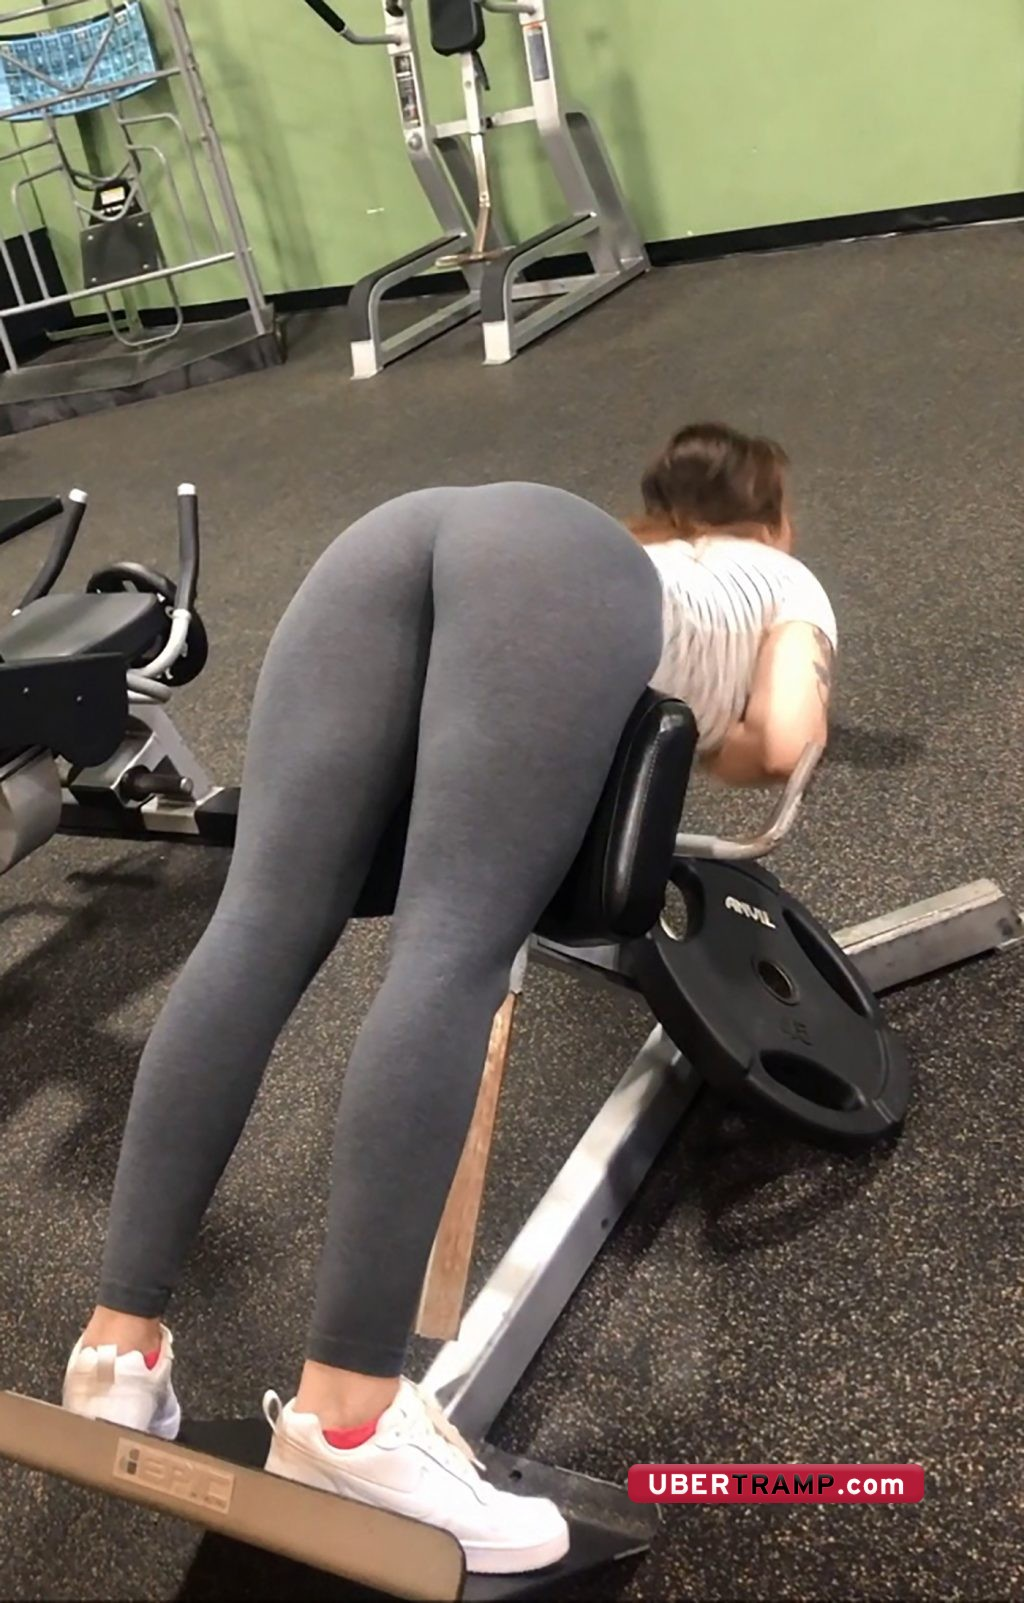 Amazing bent over ass in tights of stunning unaware girl in the gym